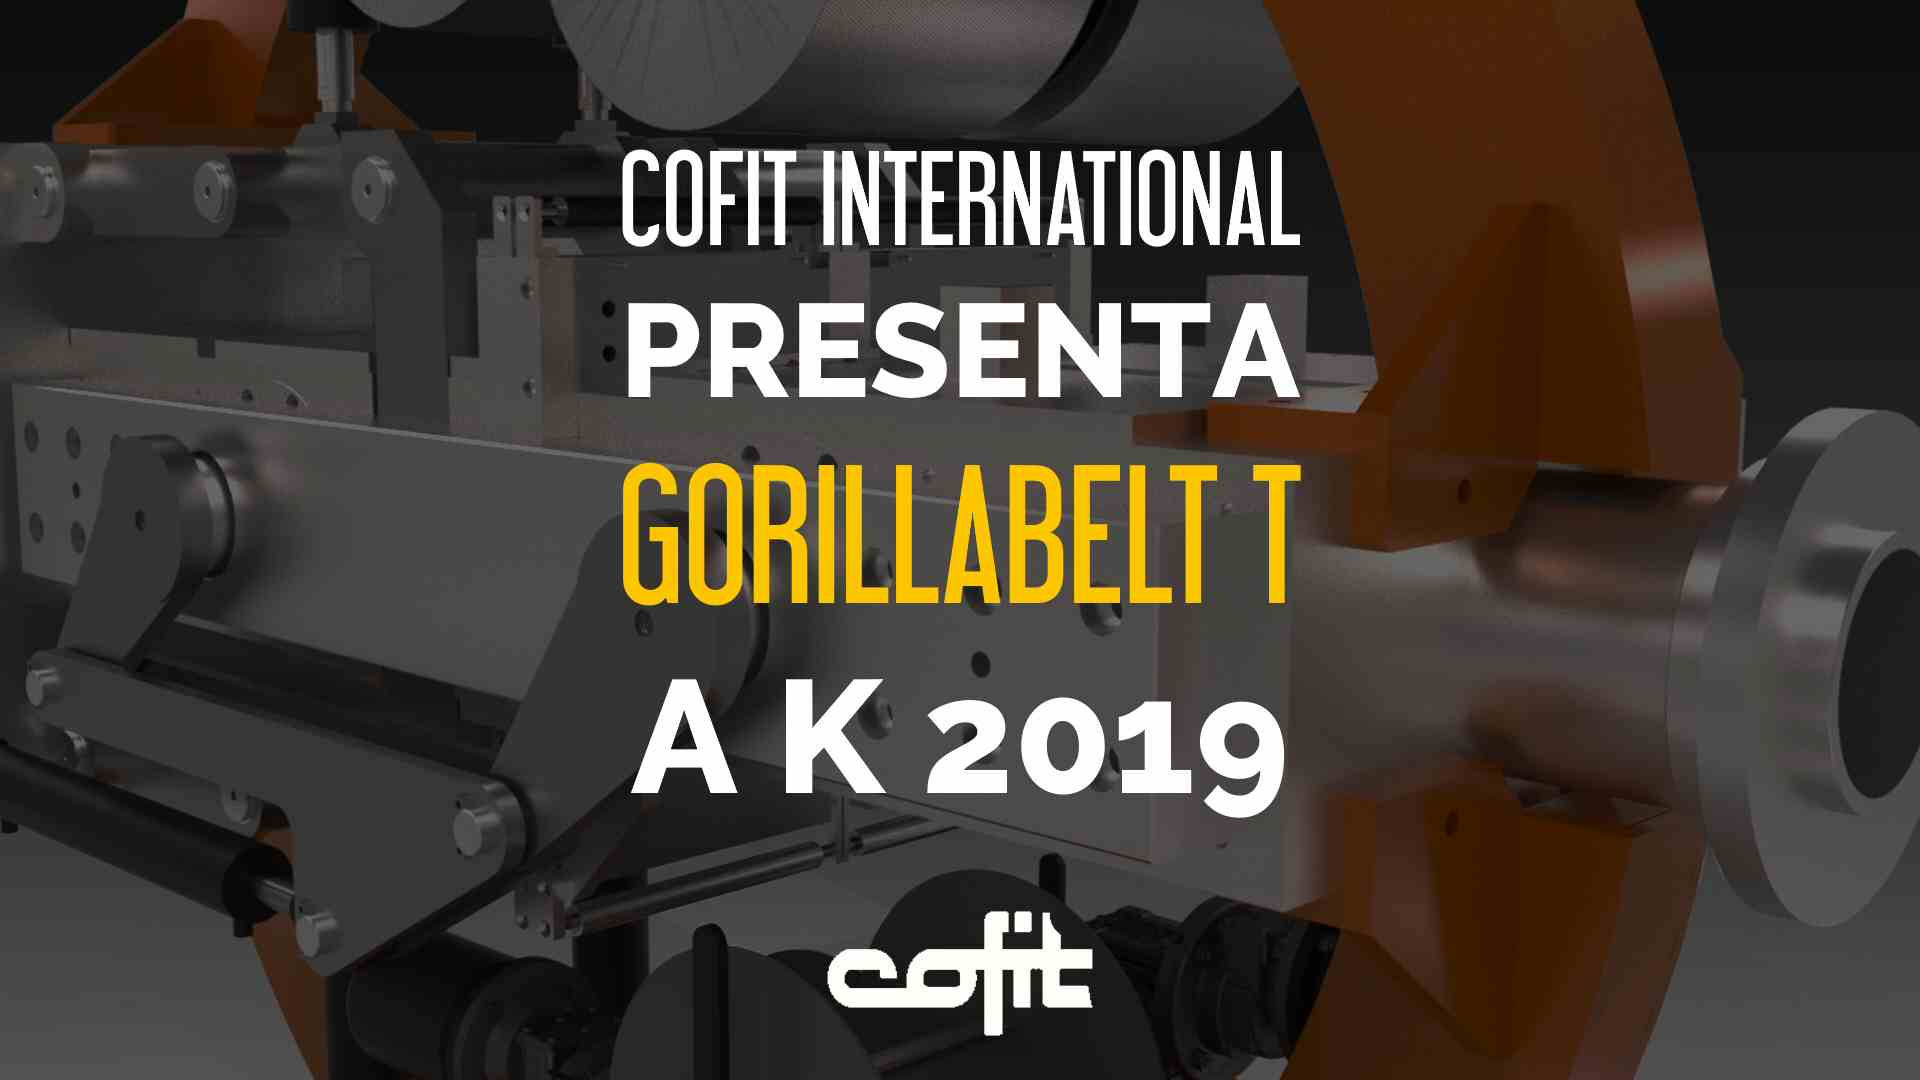 Cofit International presenta Gorillabelt T a K 2019